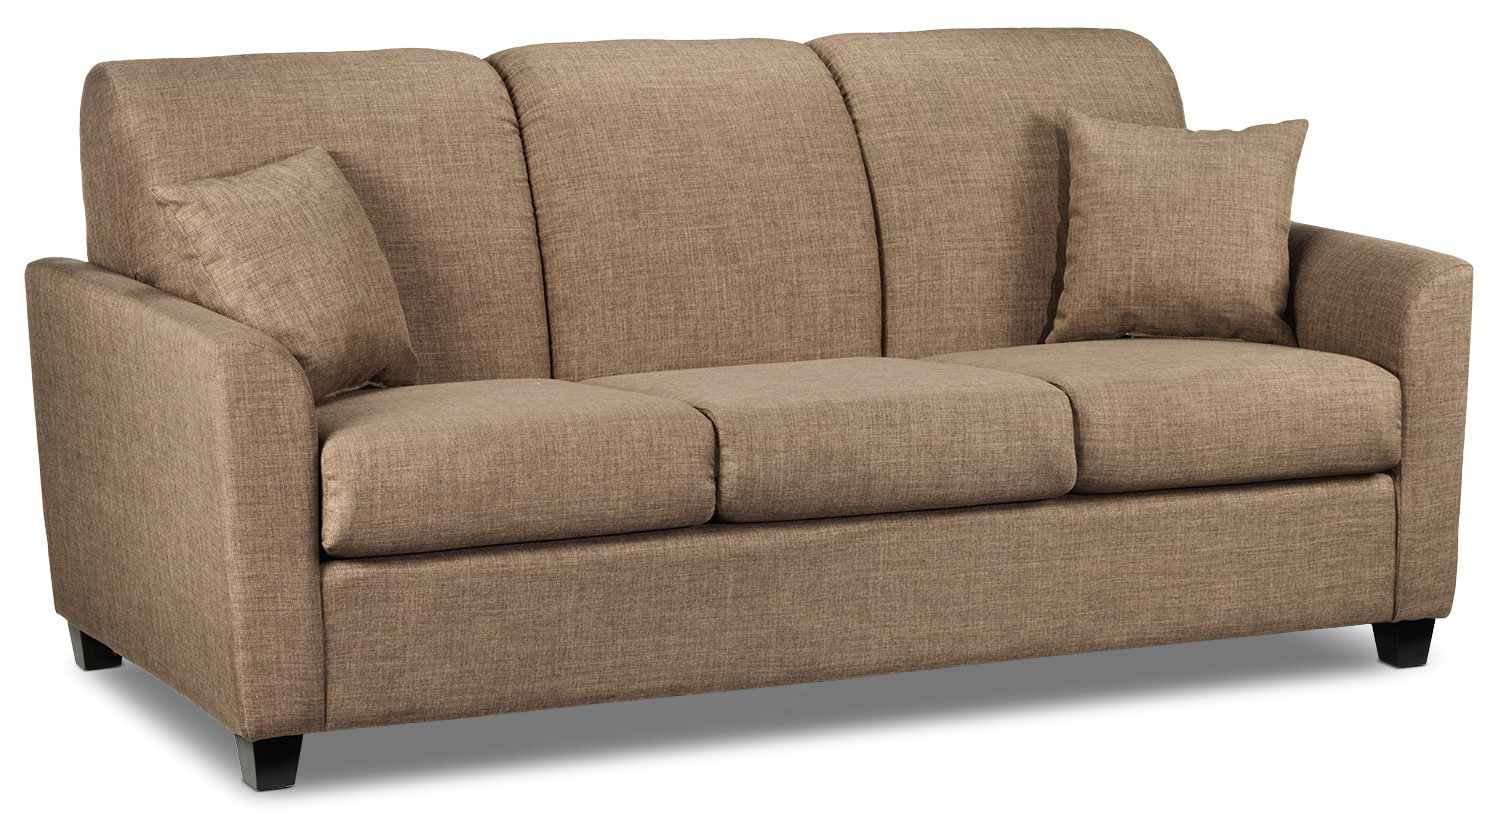 furniture for condo living. roxanne sofa hazelnut furniture for condo living t